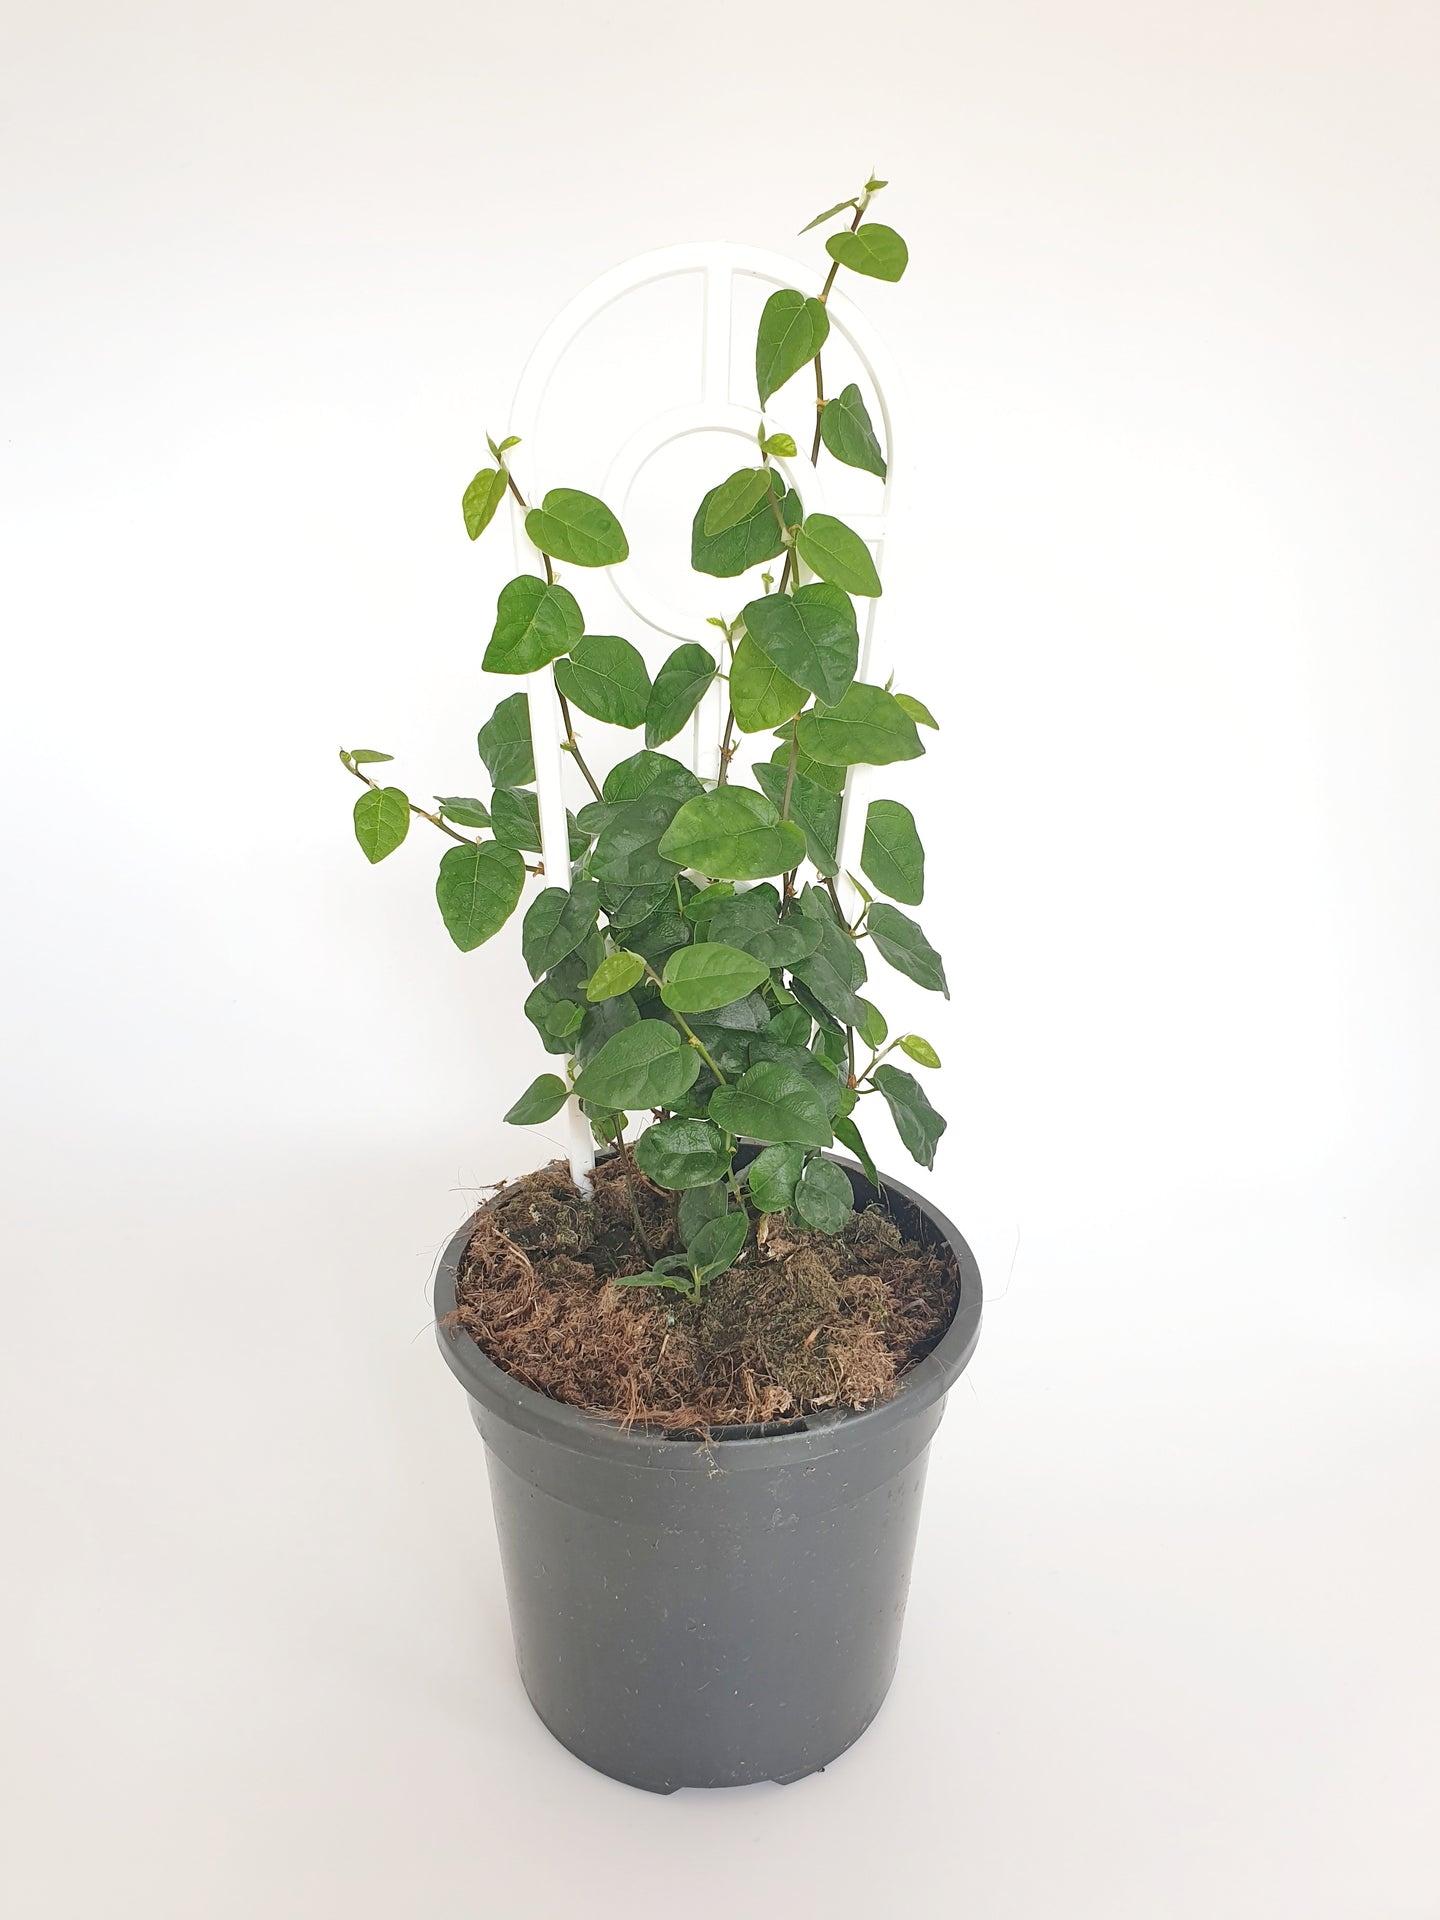 Ficus pumila creeping fig